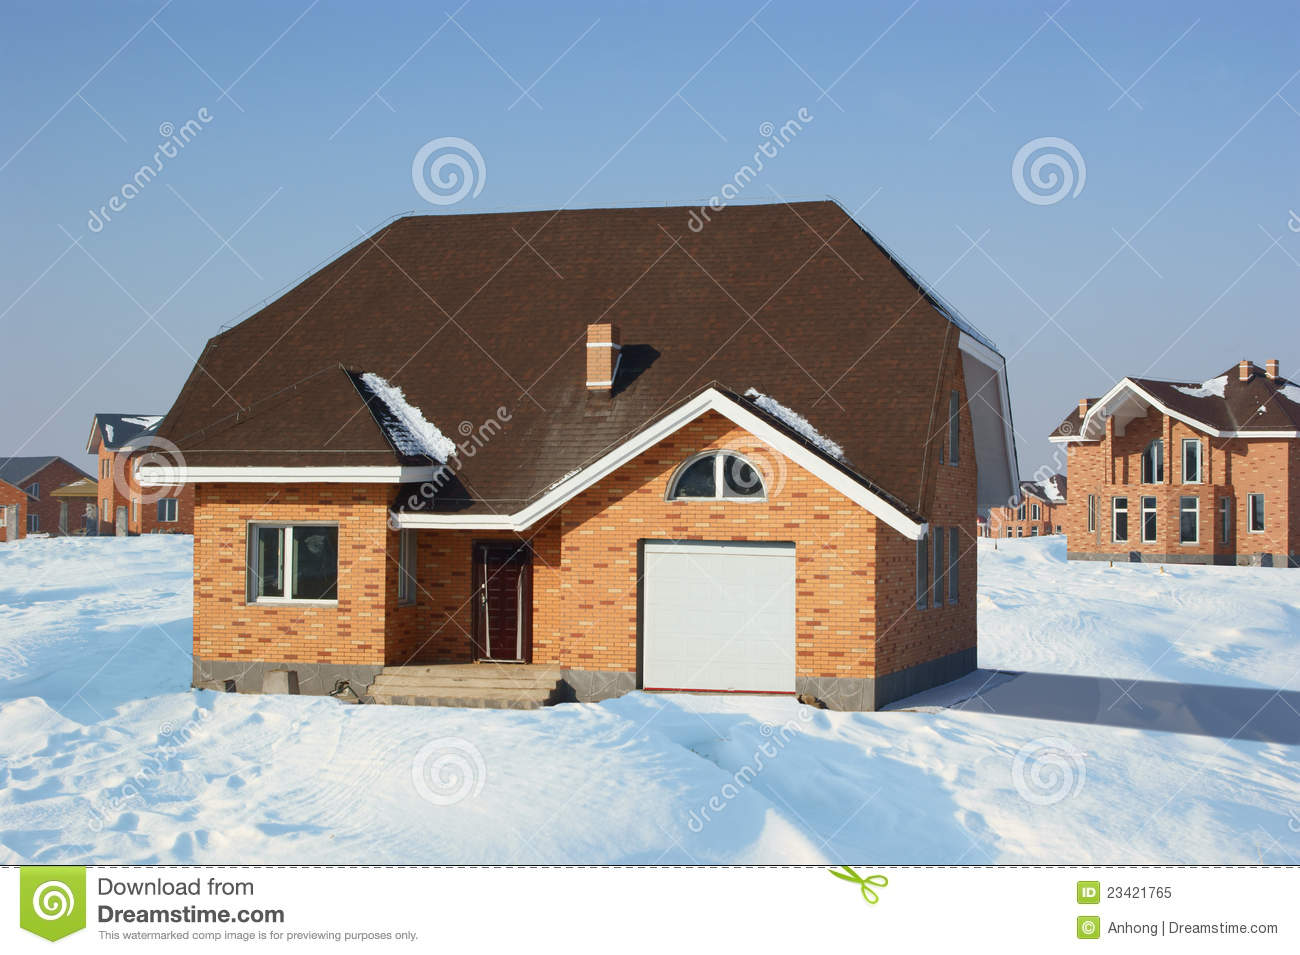 Luxury home royalty free stock photo image 23421765 for Free luxury home images